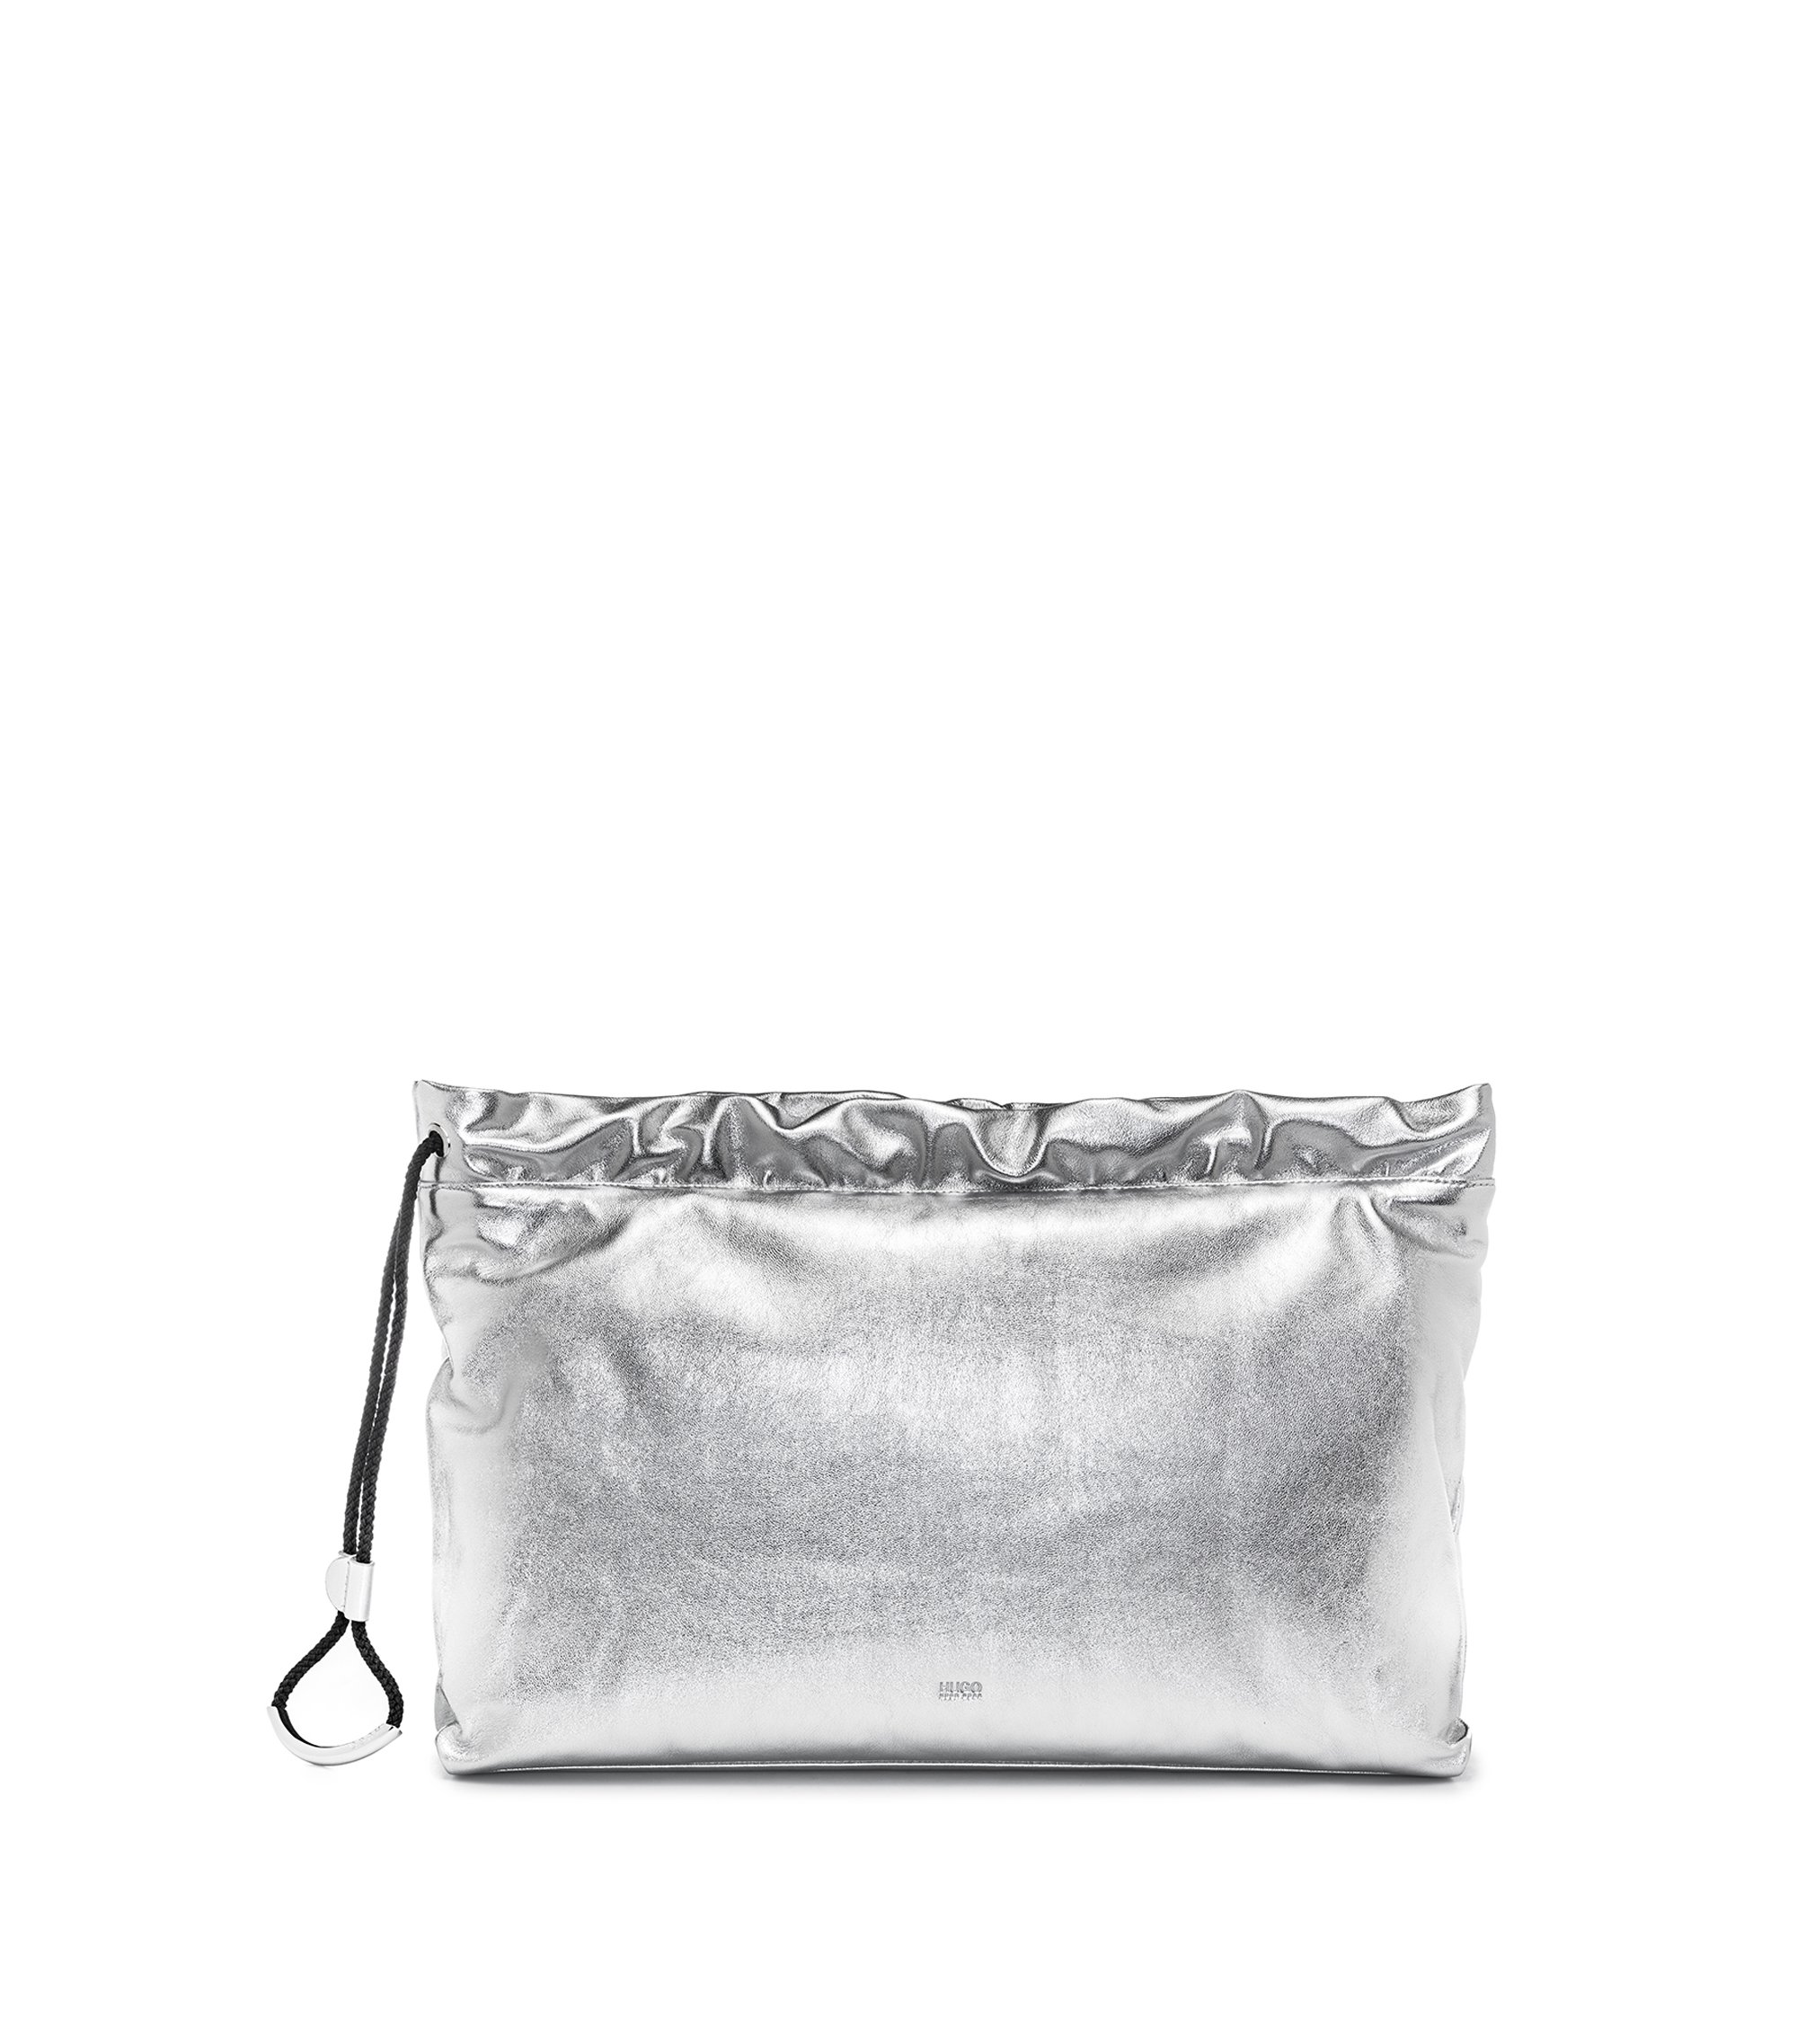 Leather clutch bag with drawstring, Silver